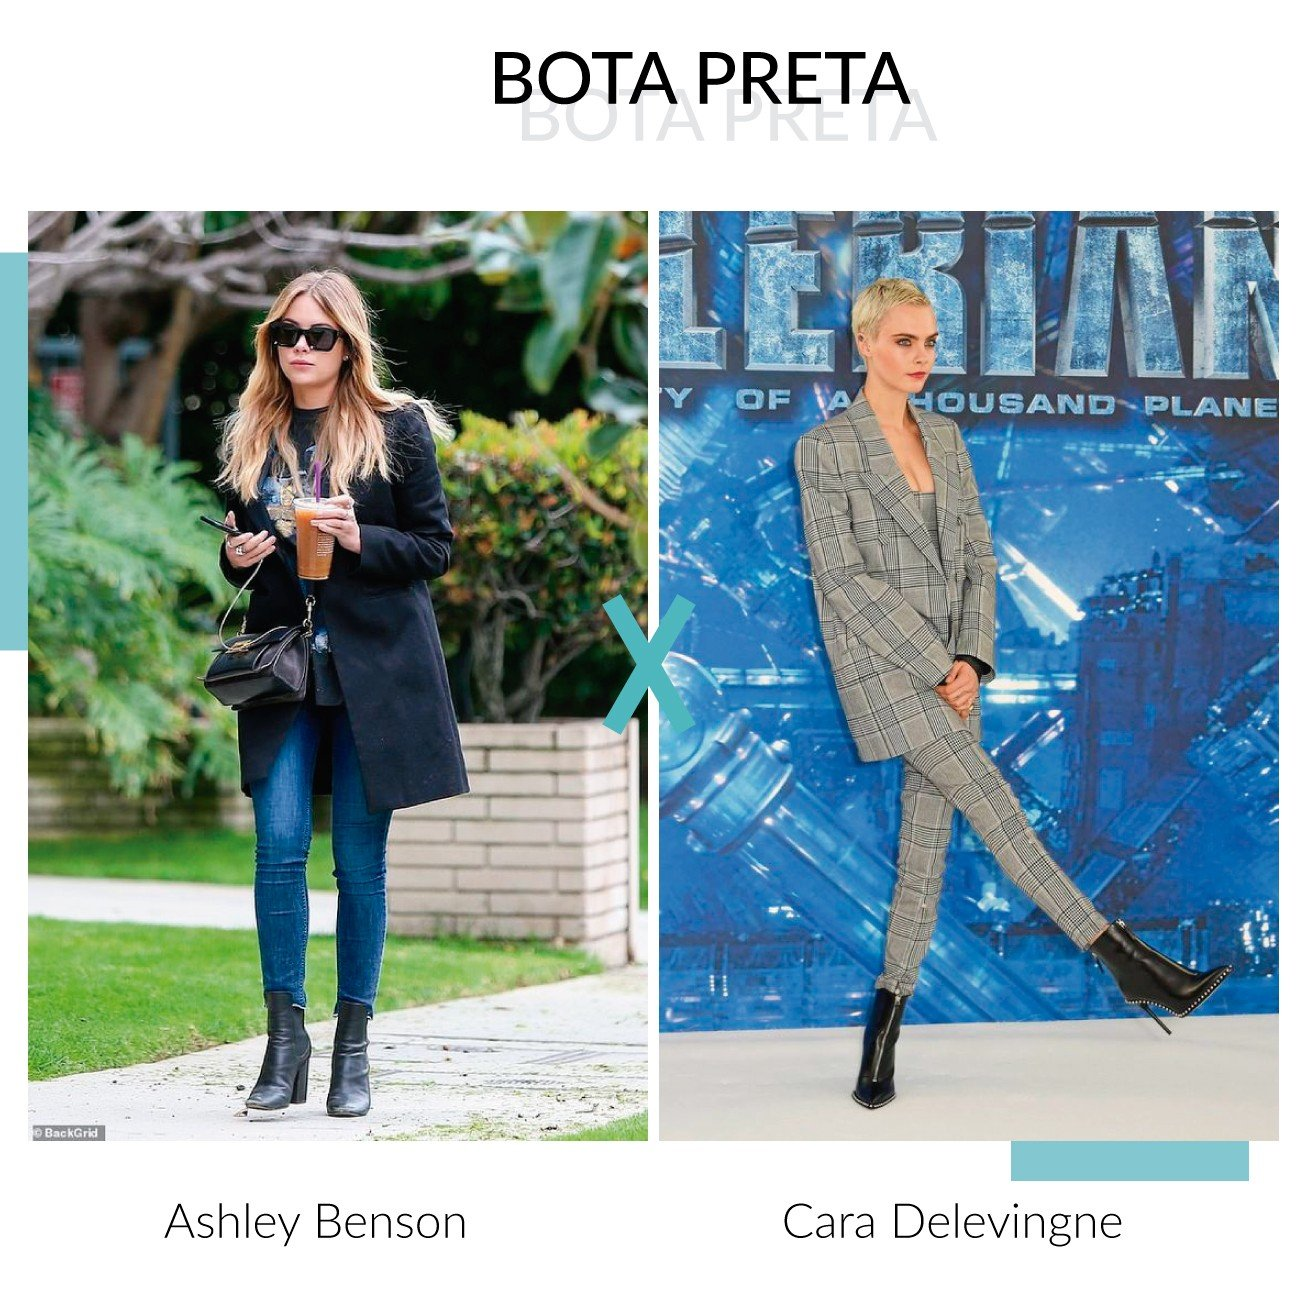 bota preta ashley benson e cara delevingne